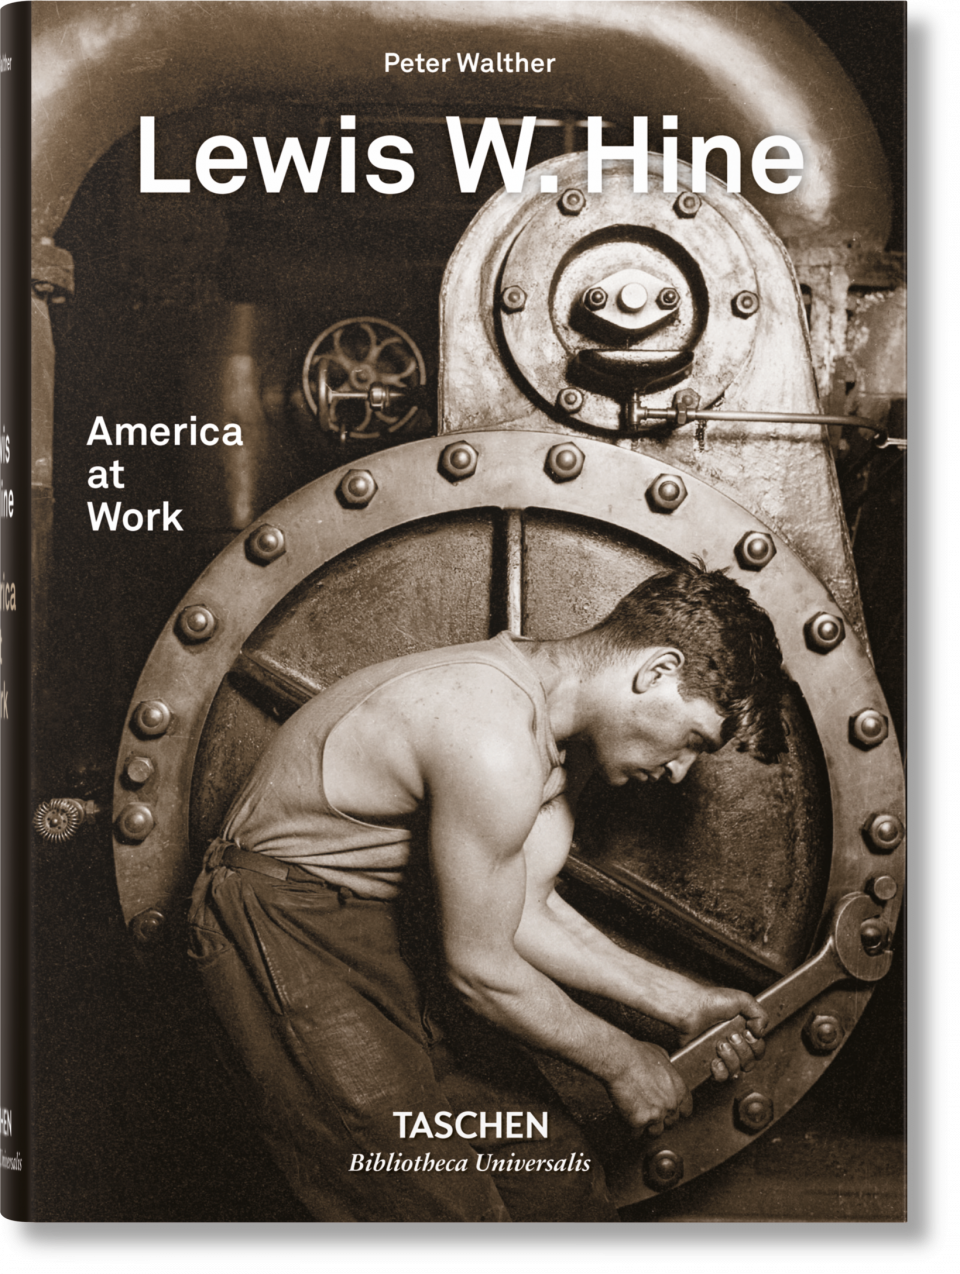 Lewis W. Hine - Walther Peter